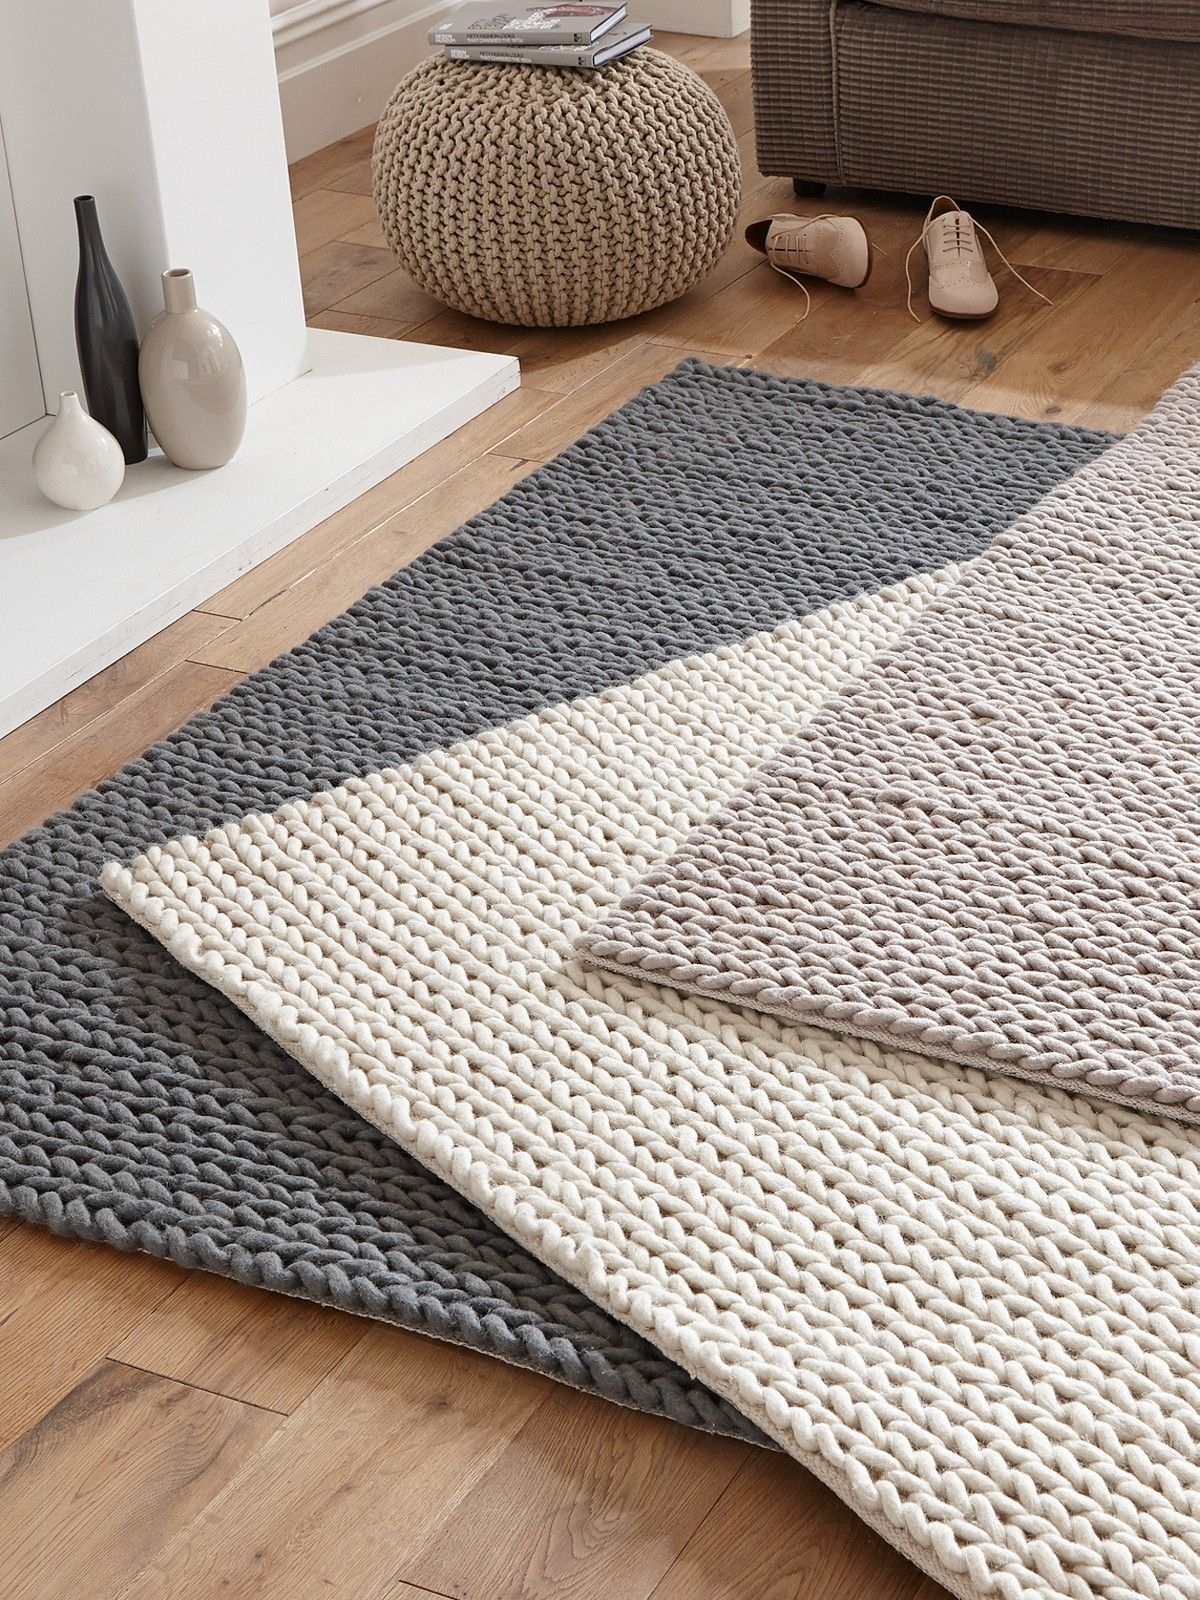 Fusion Wool Rug | Littlewoods.com #clothing #department #Kids #knitting ideas for women #littlewoods #Mens #official #online #shopping #Site #store #women #Womens